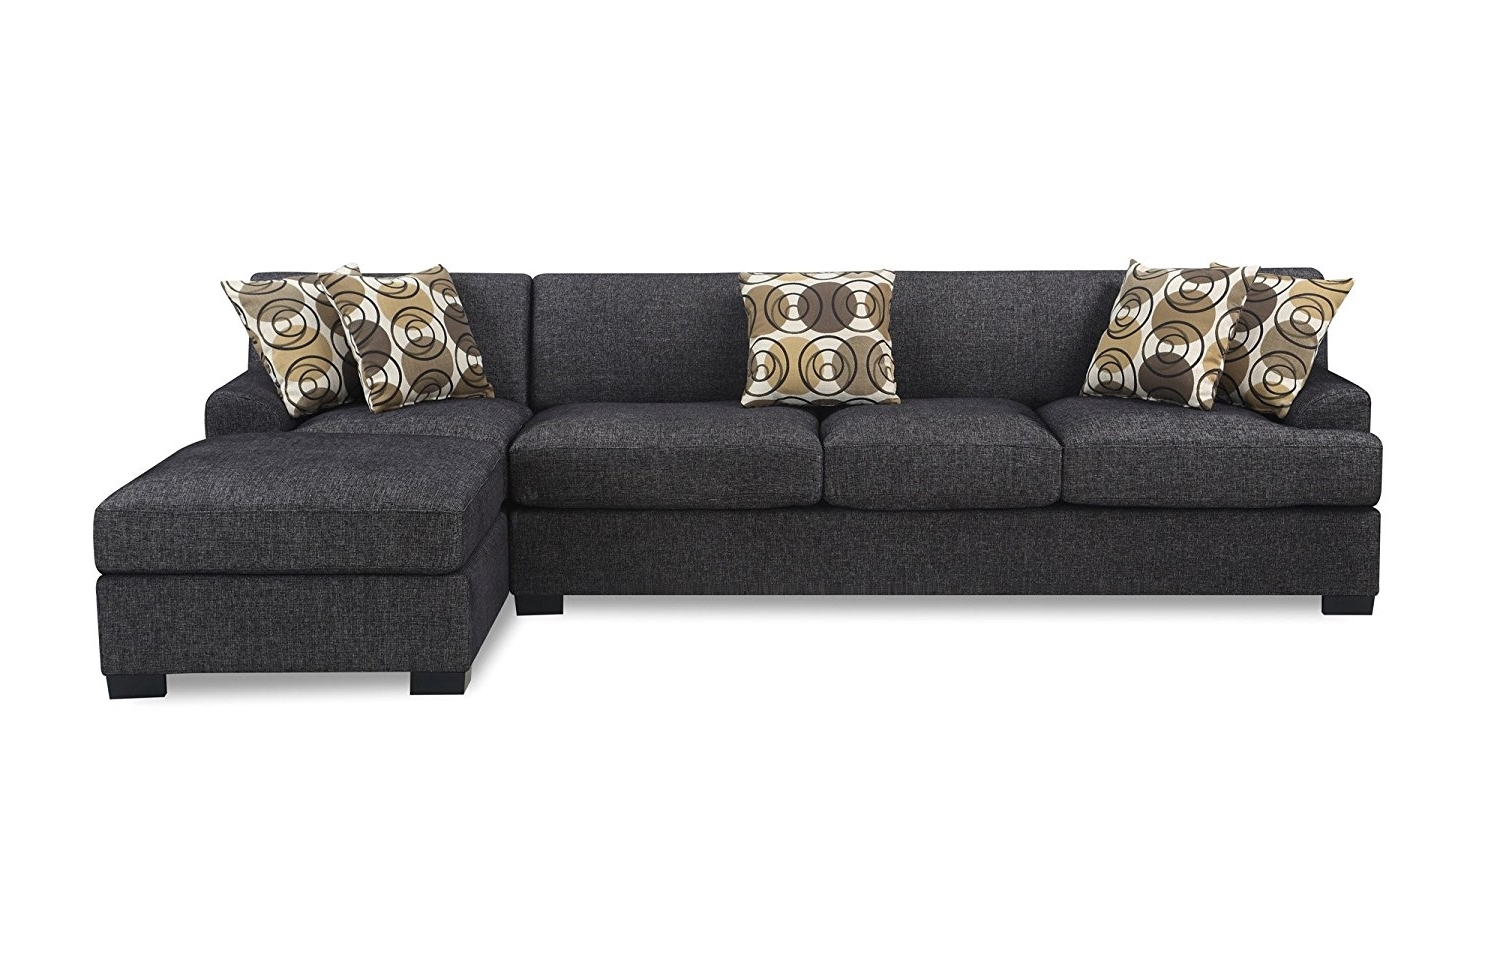 Well Liked Sectional Sofas Under 1500 In Amazon: Bobkona Benford 2 Piece Chaise Loveseat Sectional Sofa (View 15 of 15)